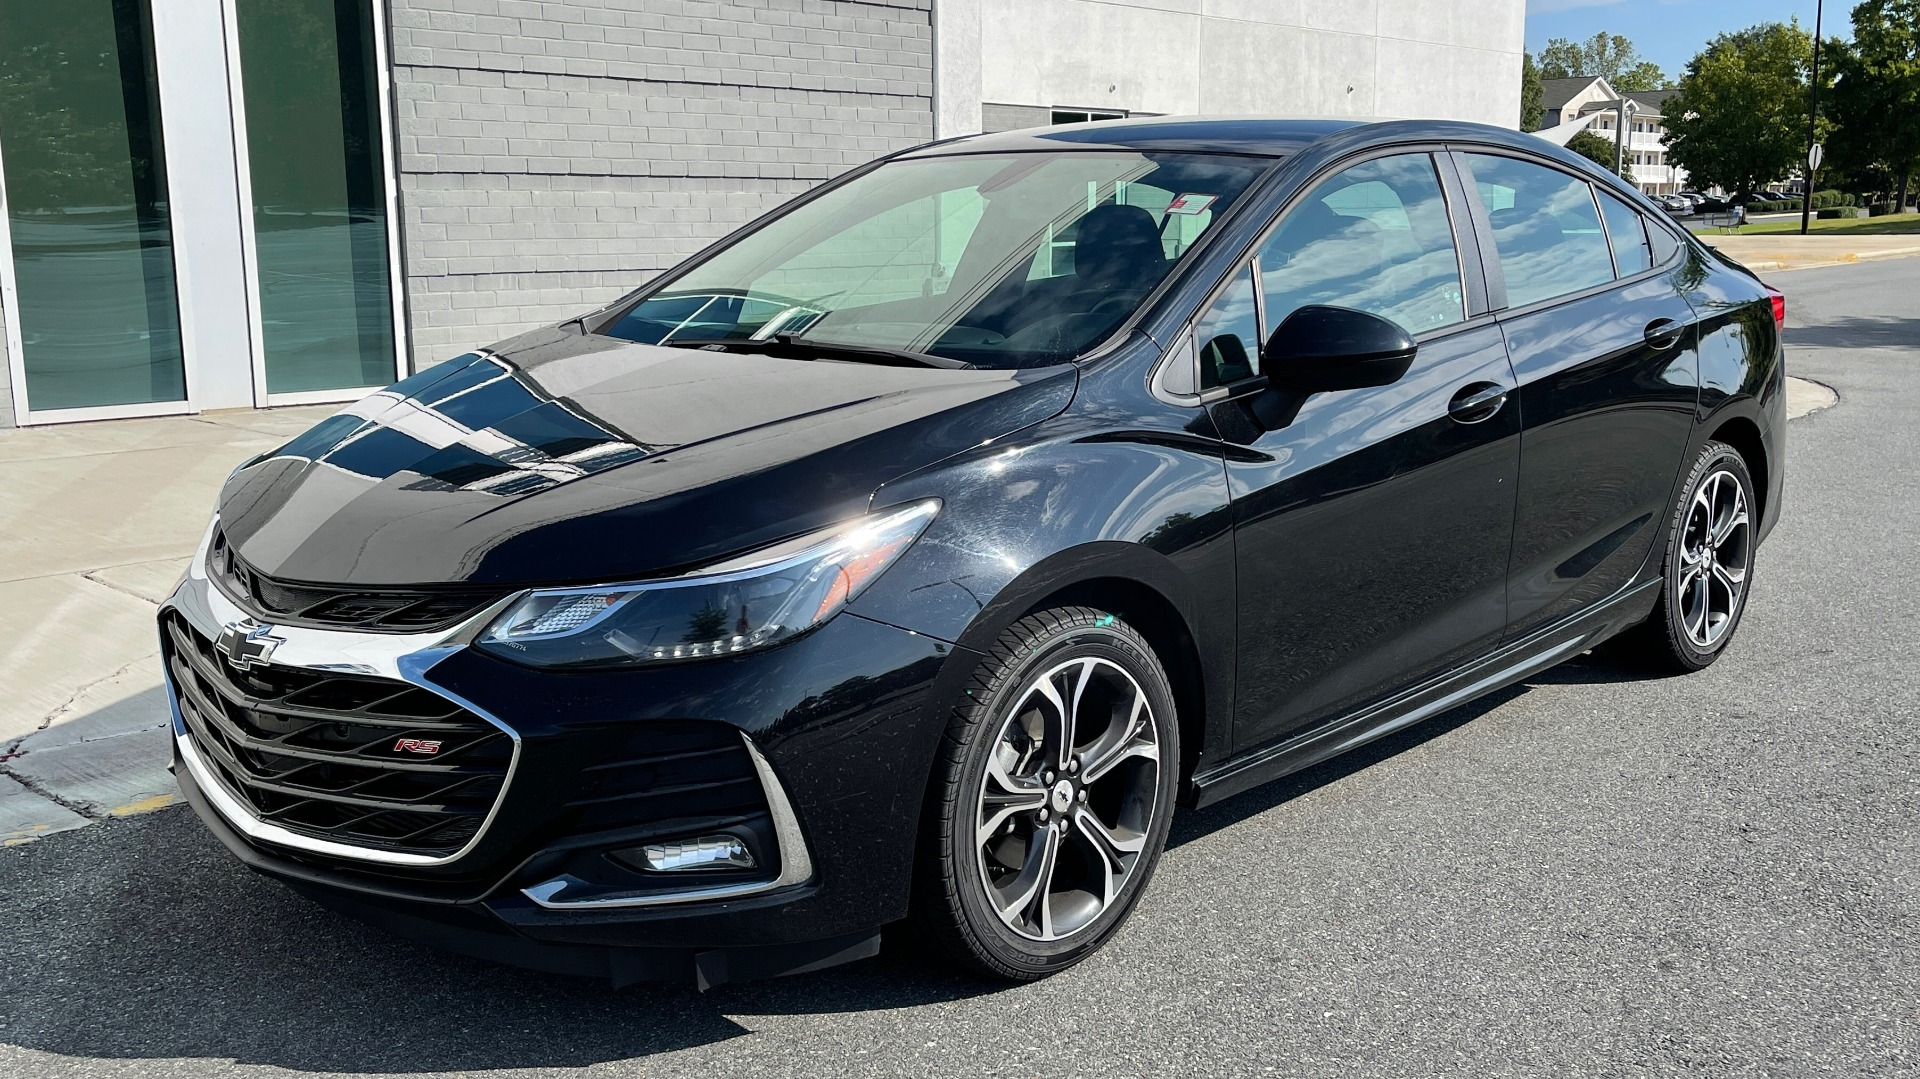 Used 2019 Chevrolet CRUZE LT / 1.4L TURBO / 6-SPD AUTO / AIR CONDITIONING / REARVIEW for sale $18,495 at Formula Imports in Charlotte NC 28227 2